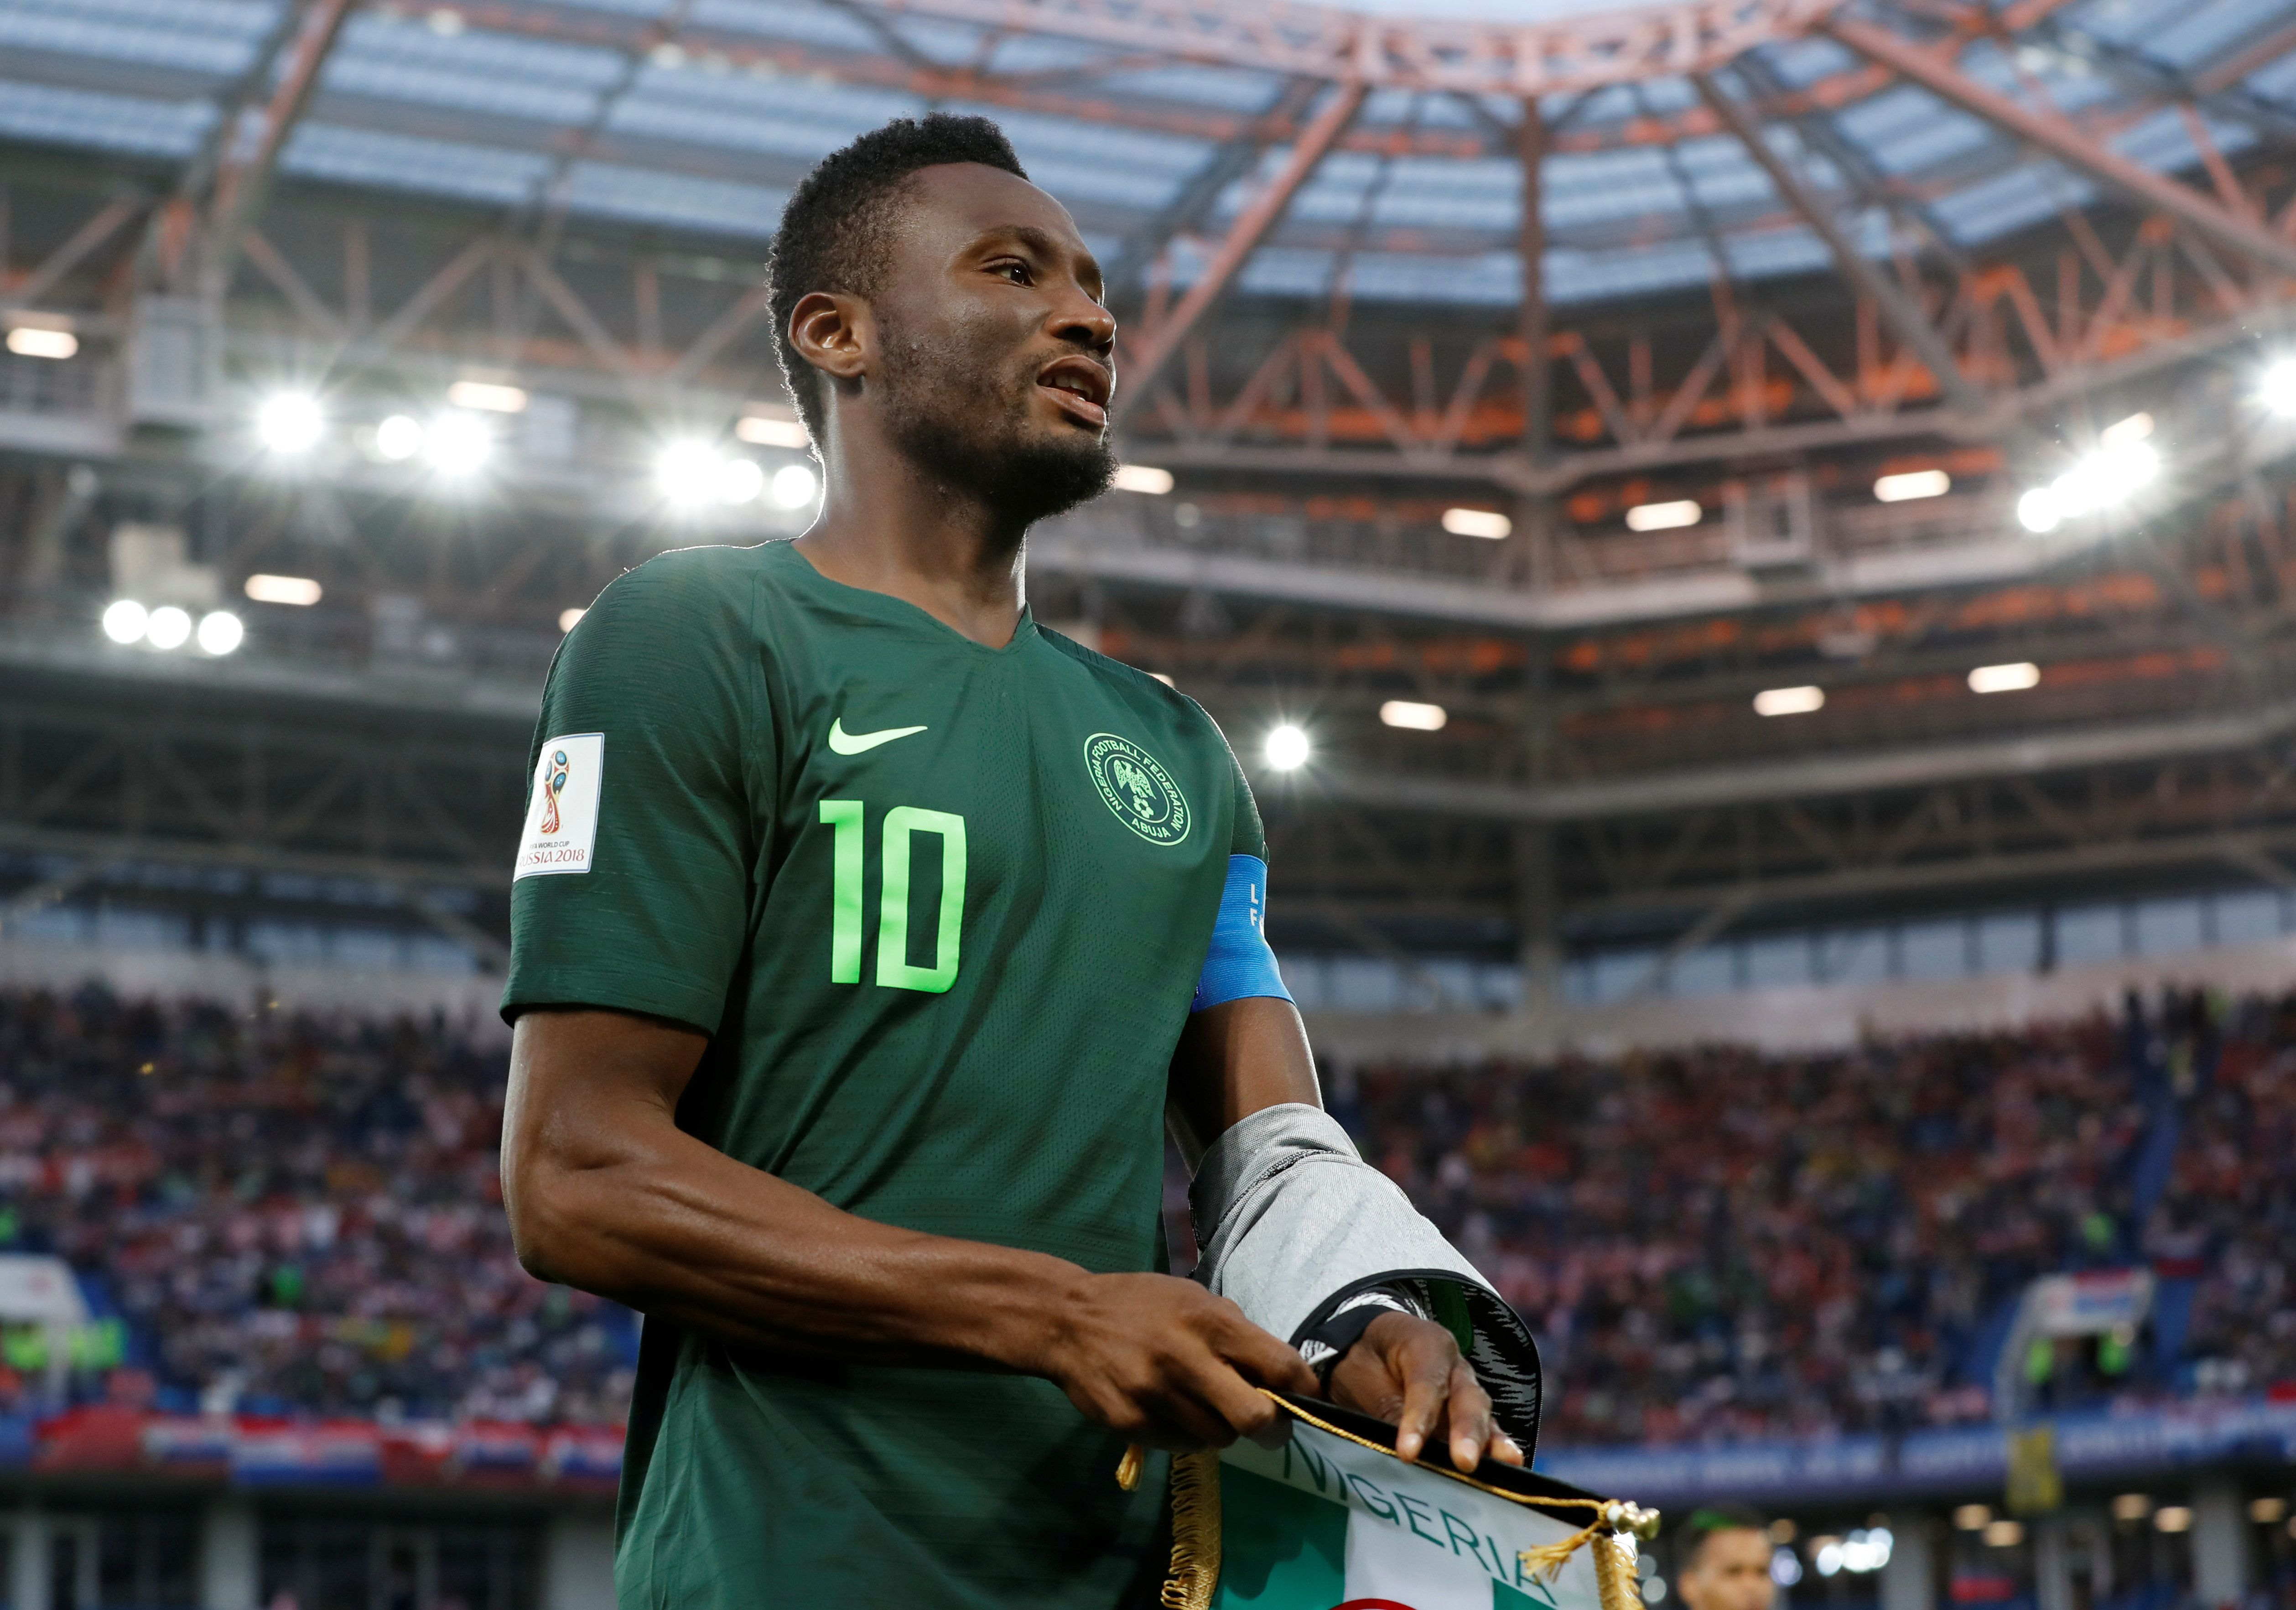 Soccer Football - World Cup - Group D - Croatia vs Nigeria - Kaliningrad Stadium, Kaliningrad, Russia - June 16, 2018   Nigeria's John Obi Mikel before the match        REUTERS/Matthew Childs